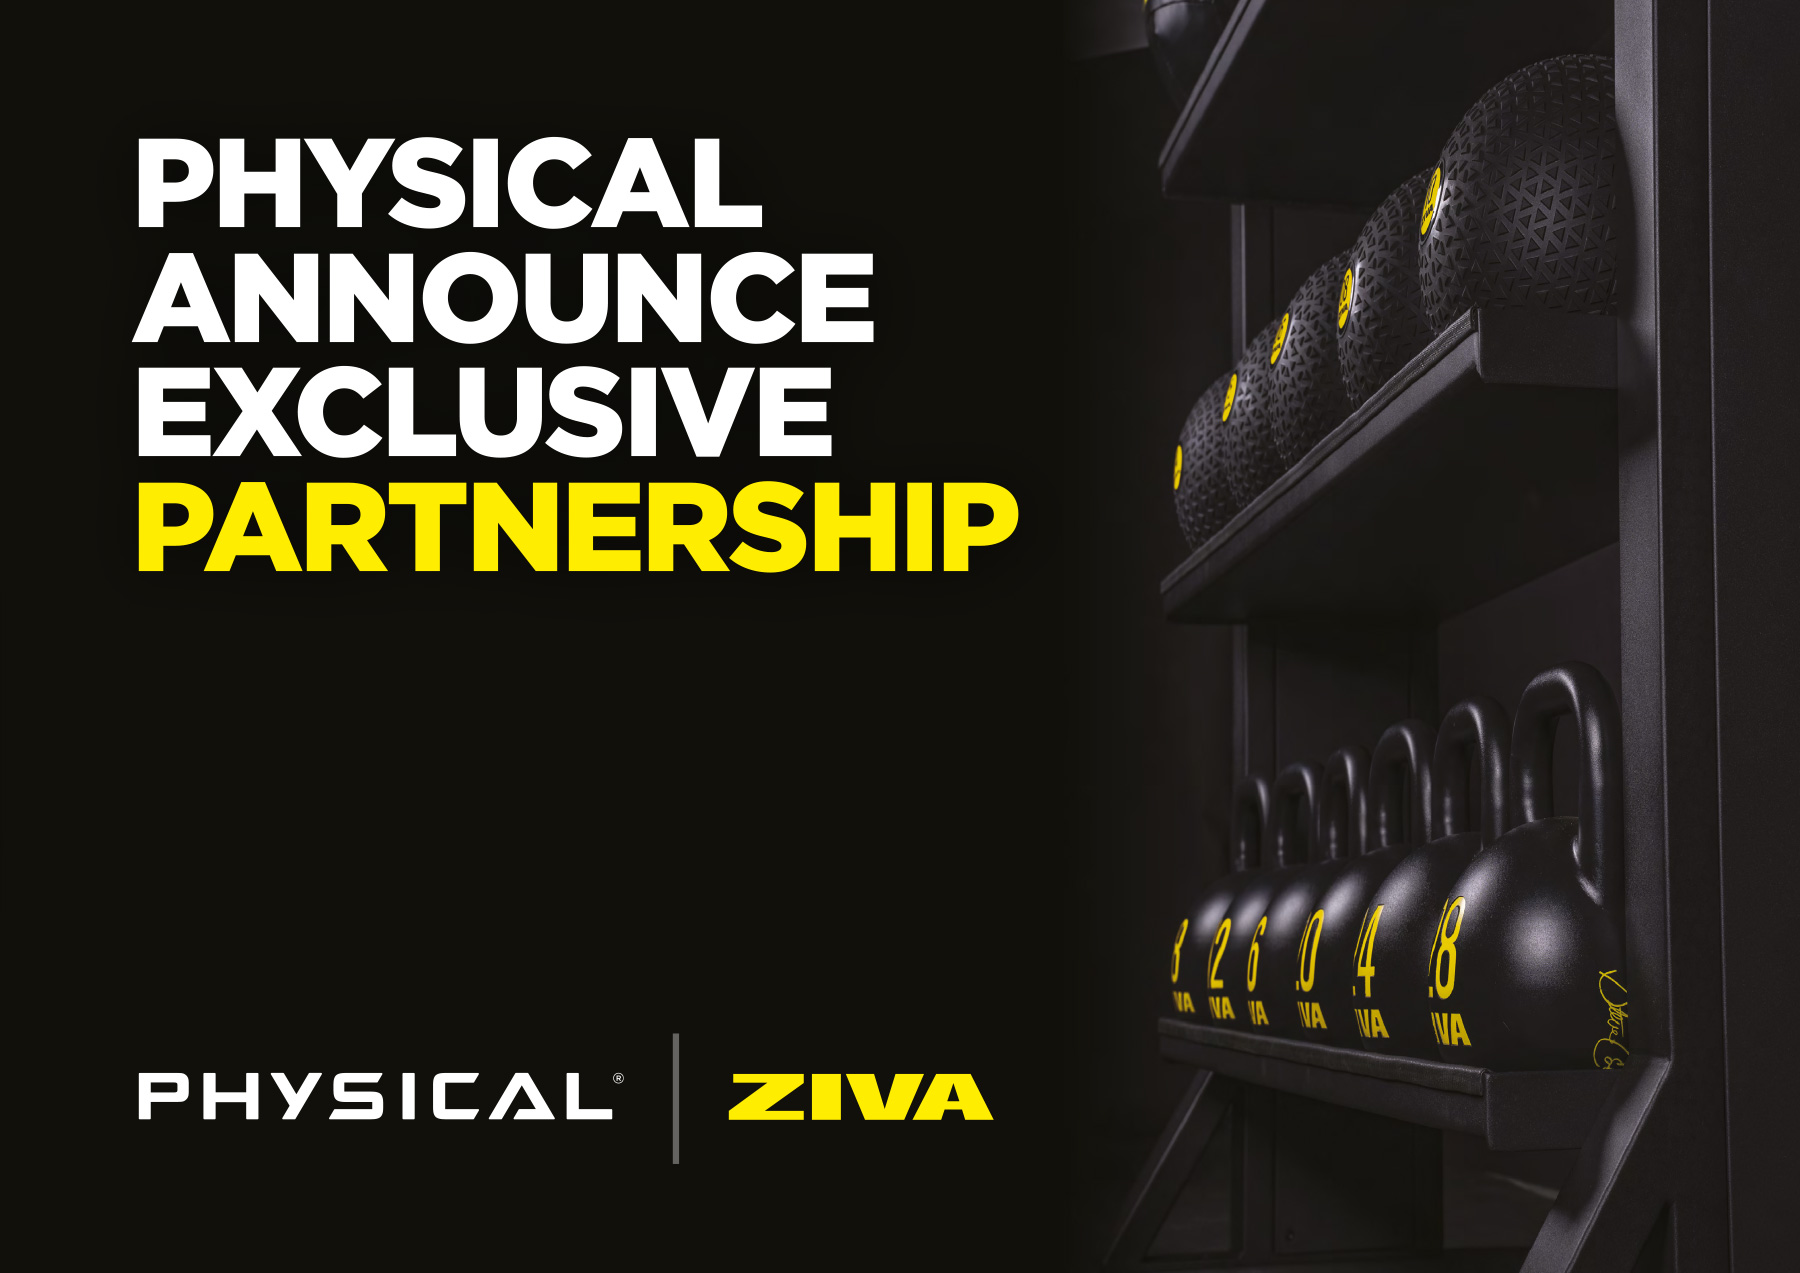 ZIVA & Physical: A new partnership to meet all needs